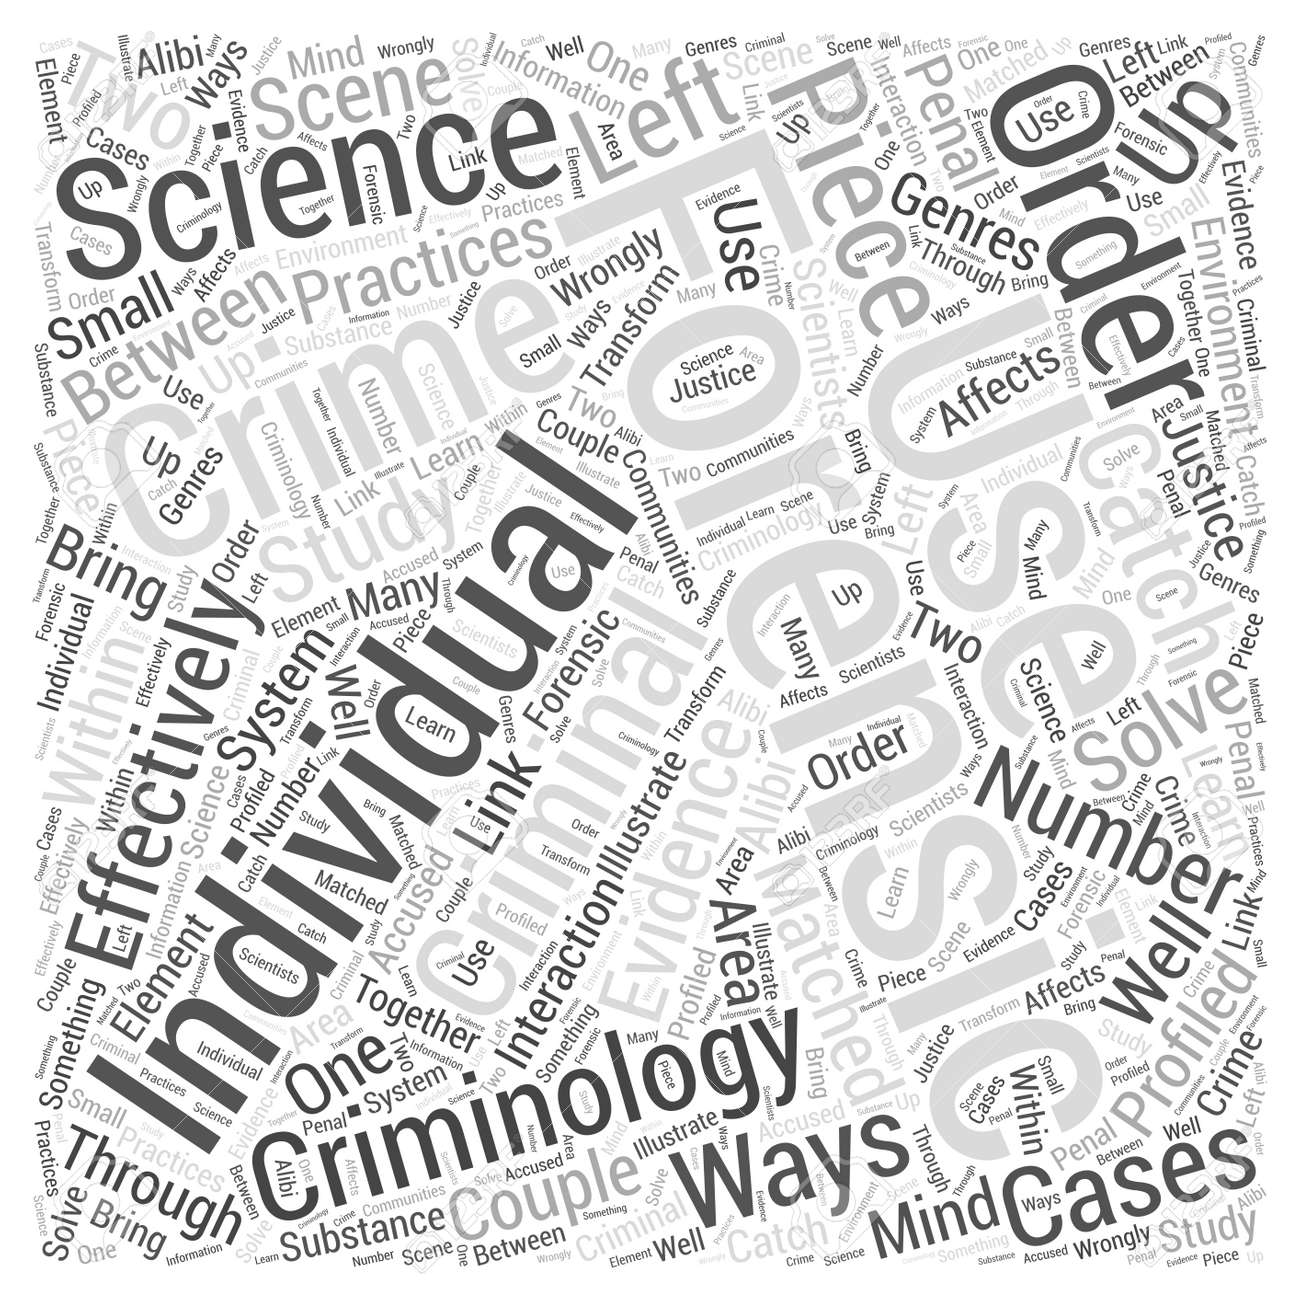 Criminology And Forensic Science Word Cloud Concept Royalty Free Cliparts Vectors And Stock Illustration Image 67215141